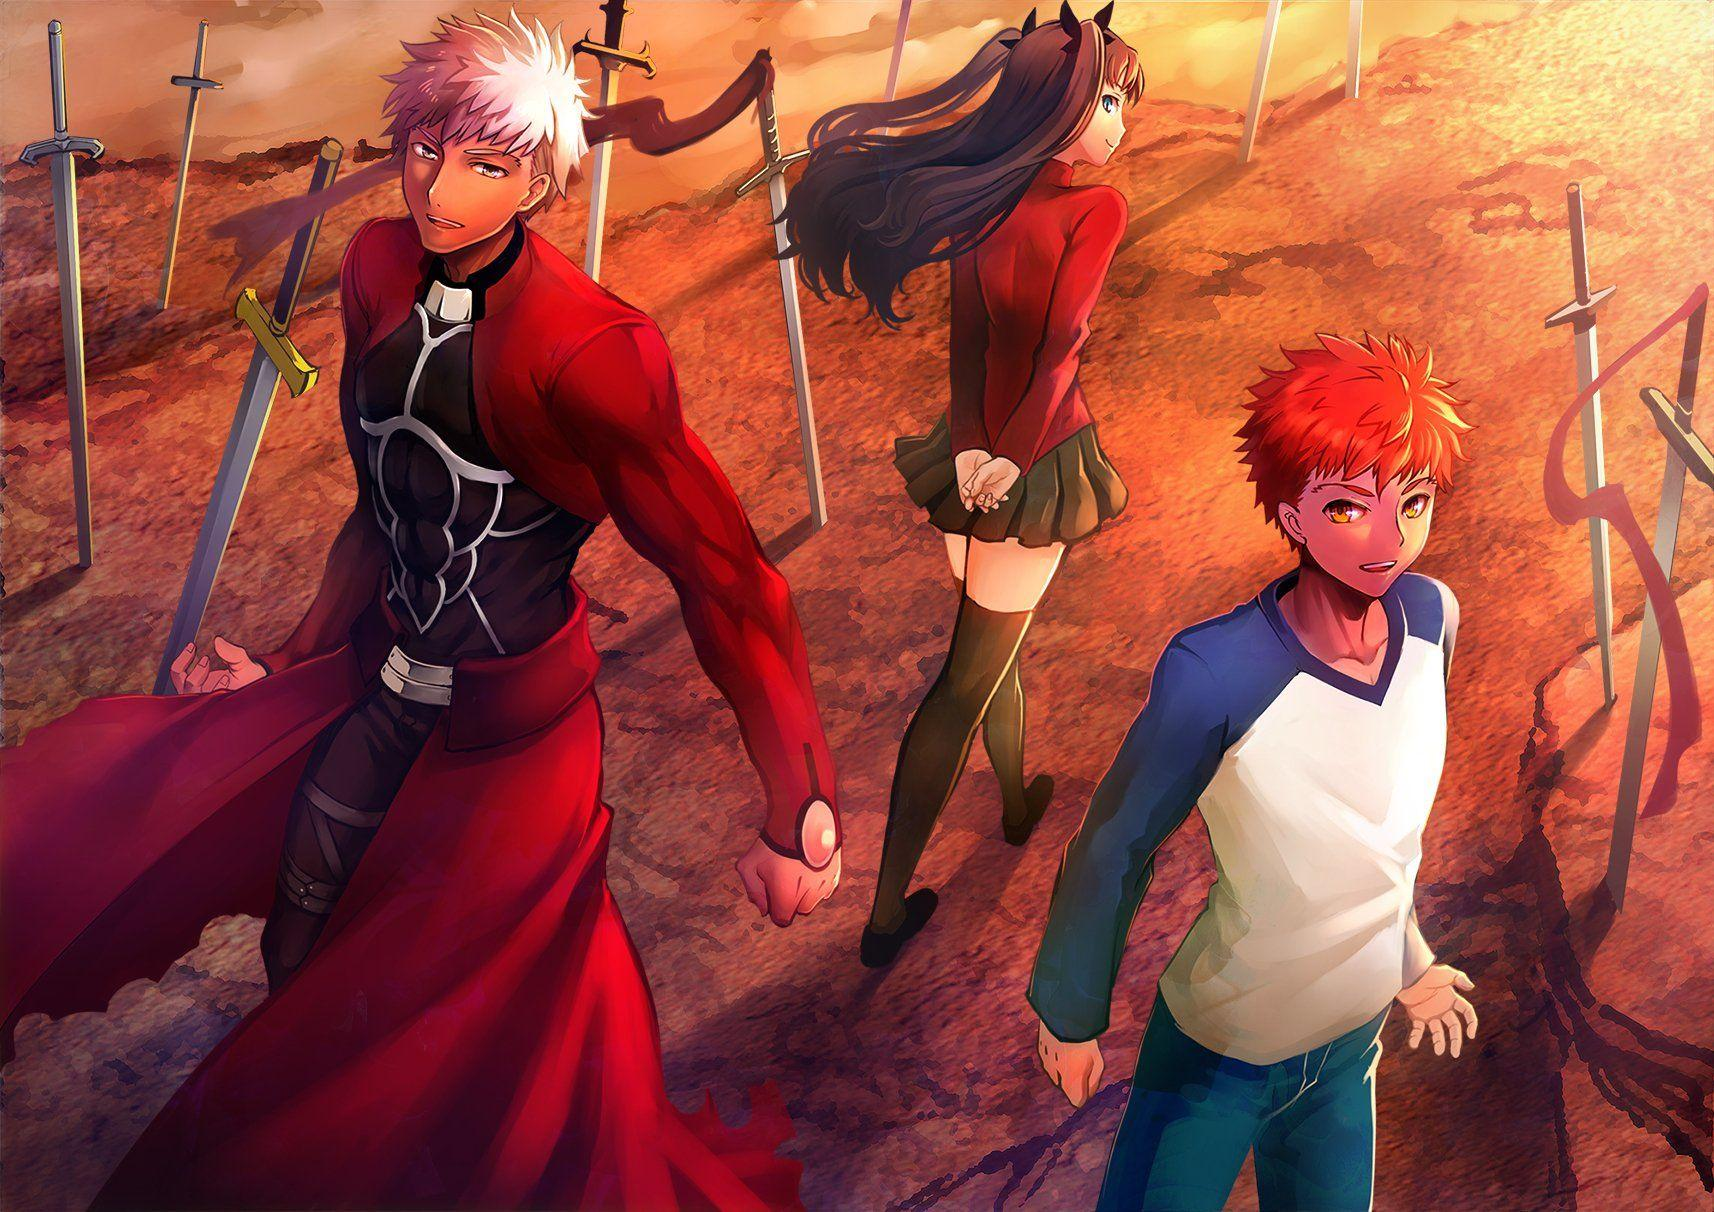 Fate Stay Night Tohsaka Rin Emiya Shirou Archer Wallpaper